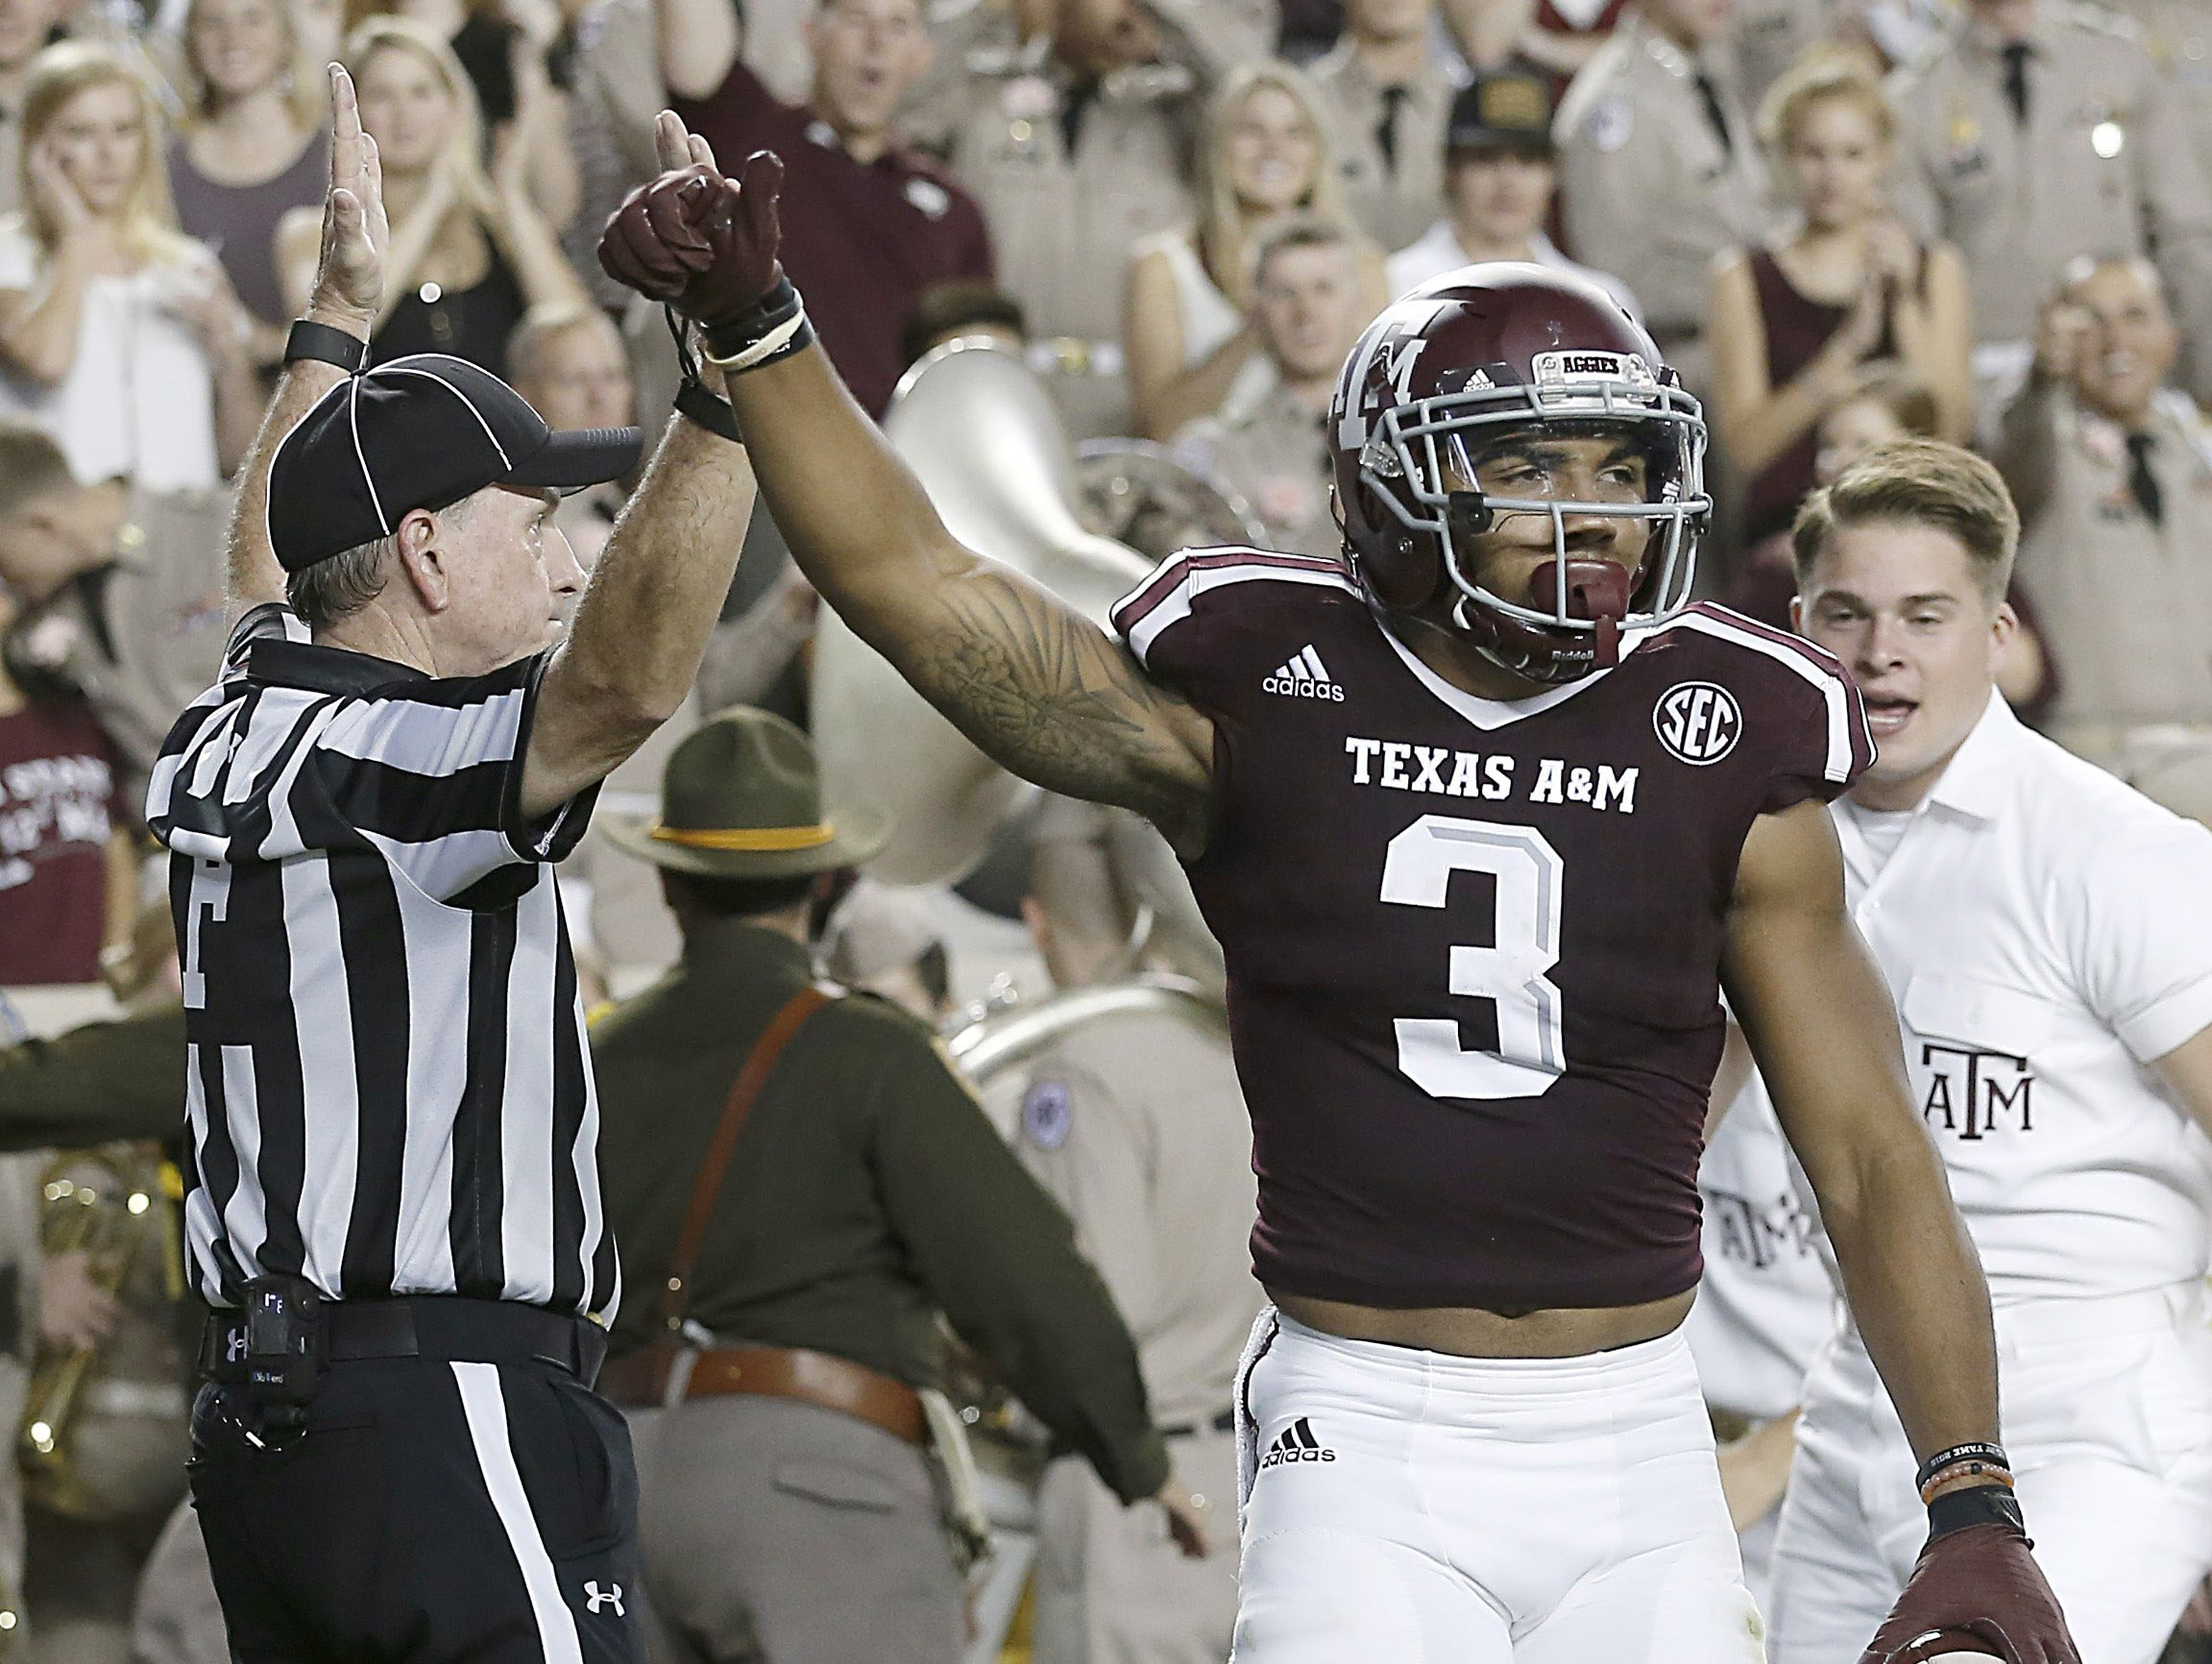 Texas A&M Aggies wide receiver Christian Kirk (3) was a standout at Scottsdale Saguaro High.